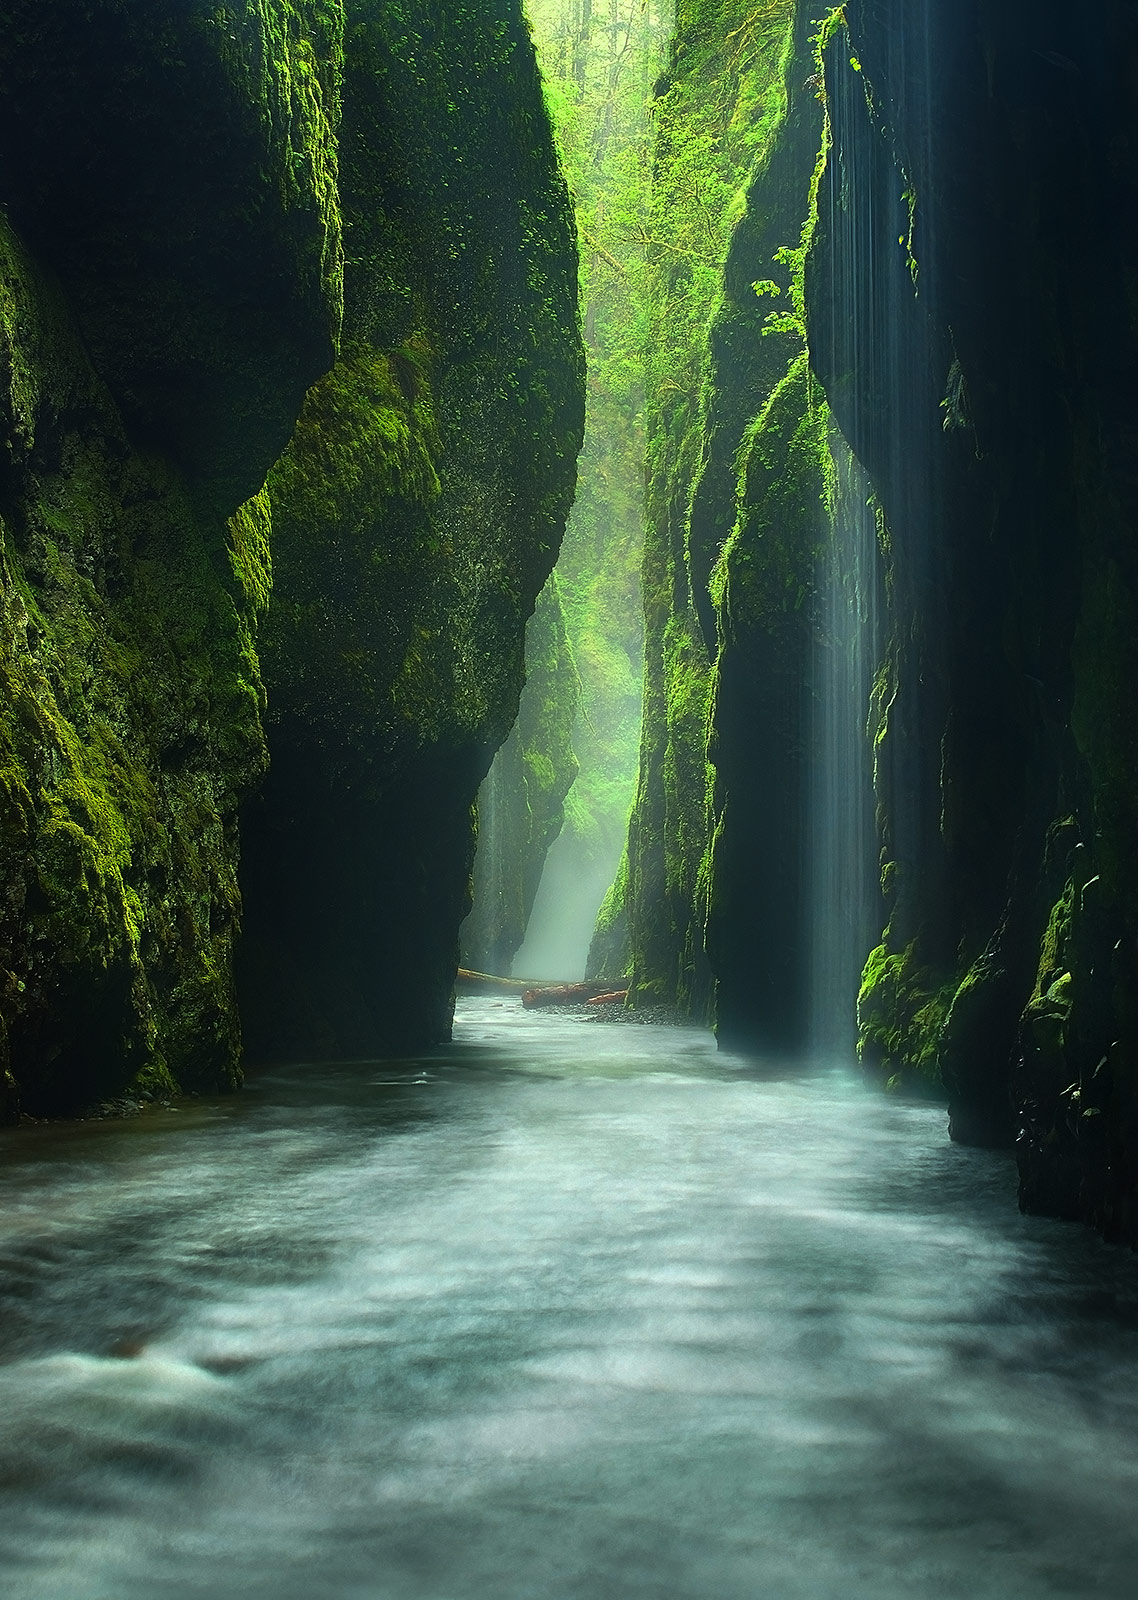 Heavy rains provide the misty atmosphere and waterfalls here in Oregon's Rain Forest canyon, Oneonta Gorge.